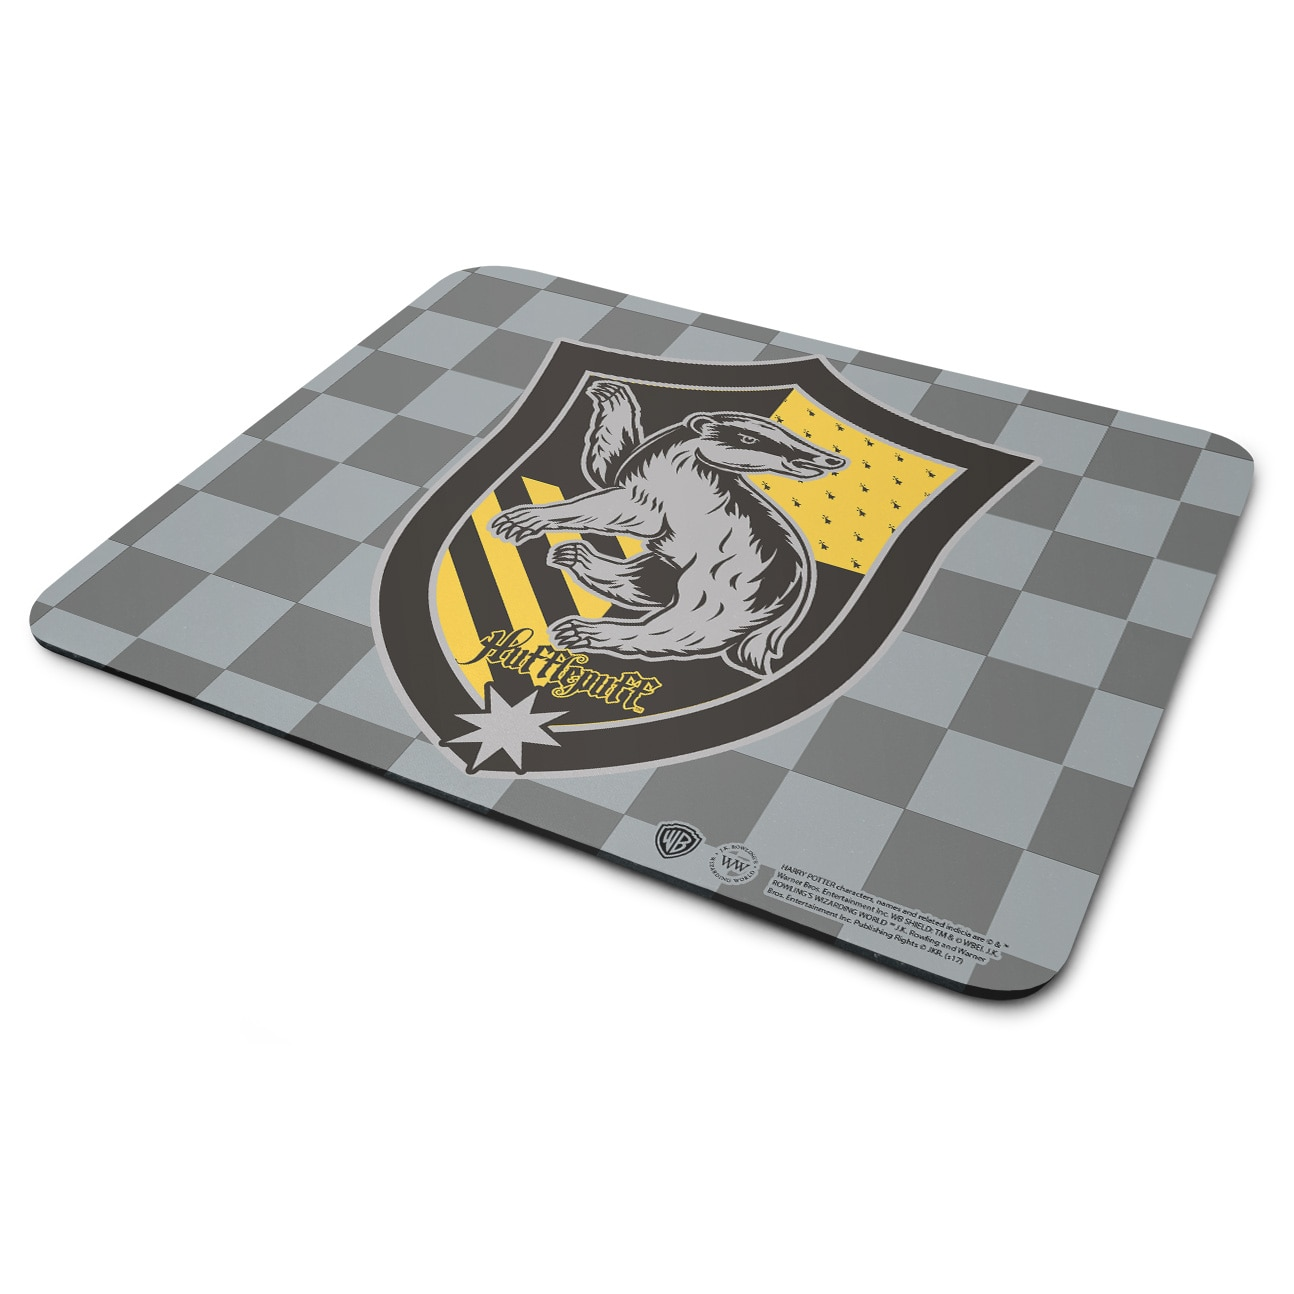 Hufflepuff Mouse Pad 3-Pack